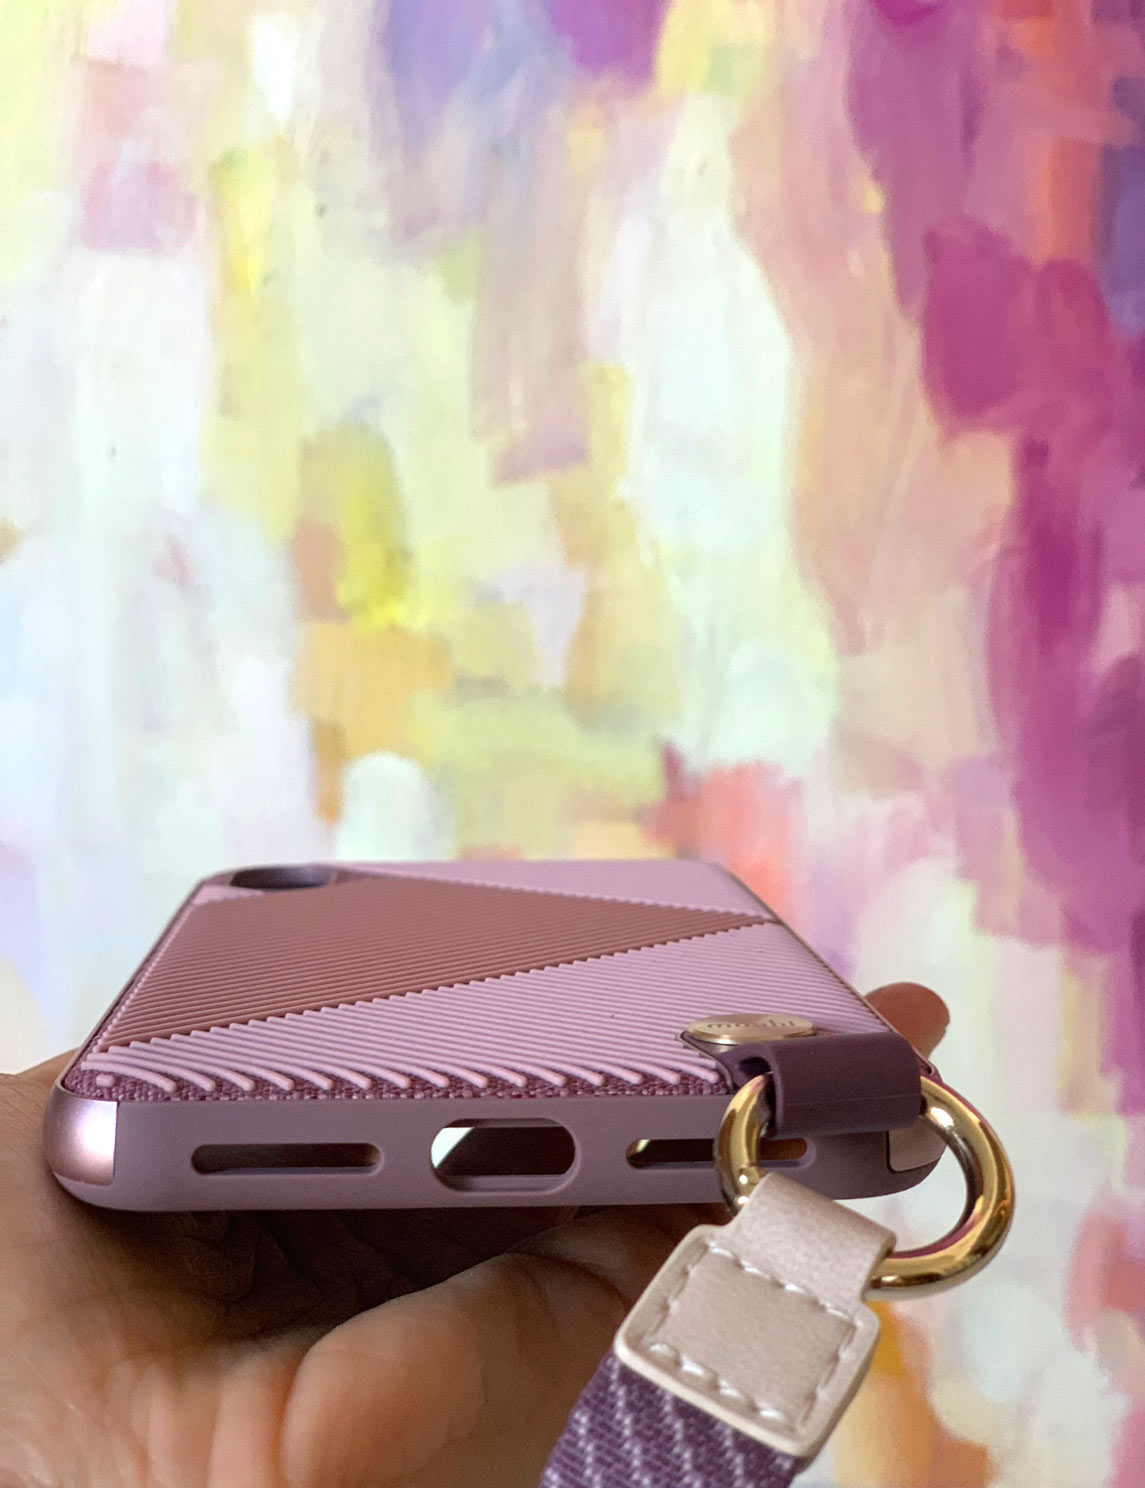 IPhone-XS-Max-Moshi-Altra-Case-Strap-Giselle-Ayupova-Abstract-Painting-171028-A.jpg